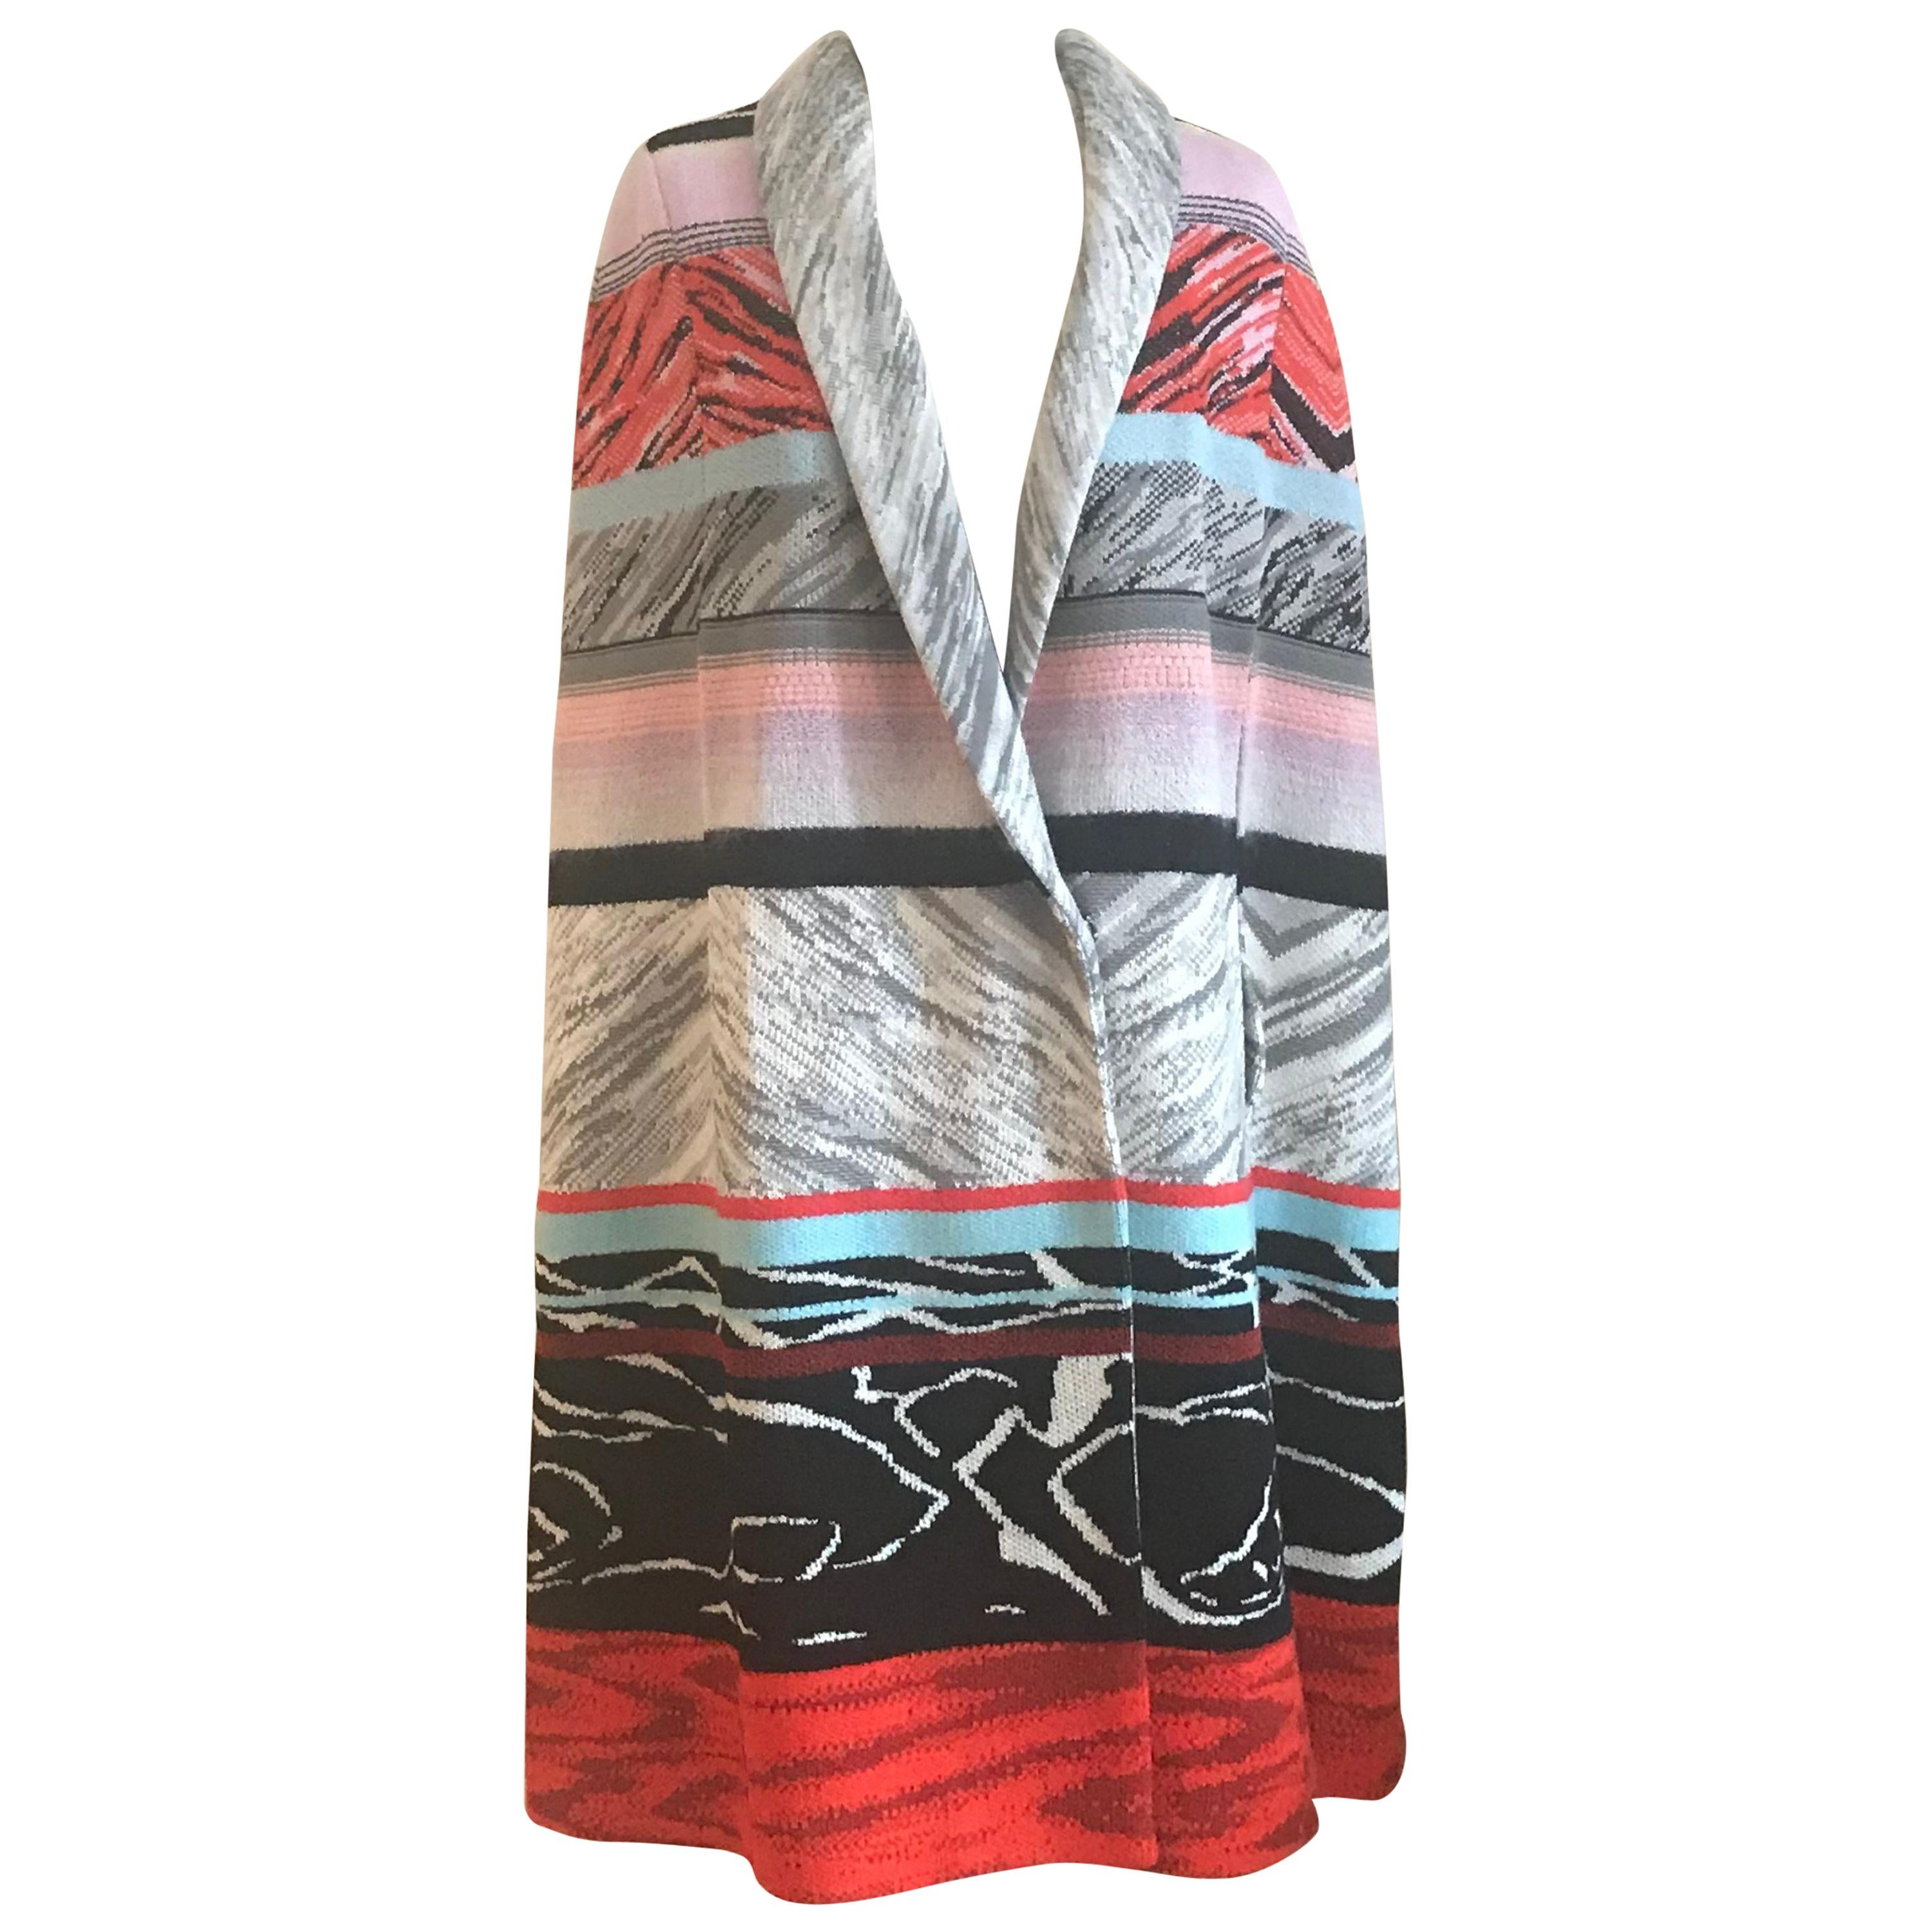 New Missoni Patterned Stripe Knit Cape Poncho with Shawl Collar